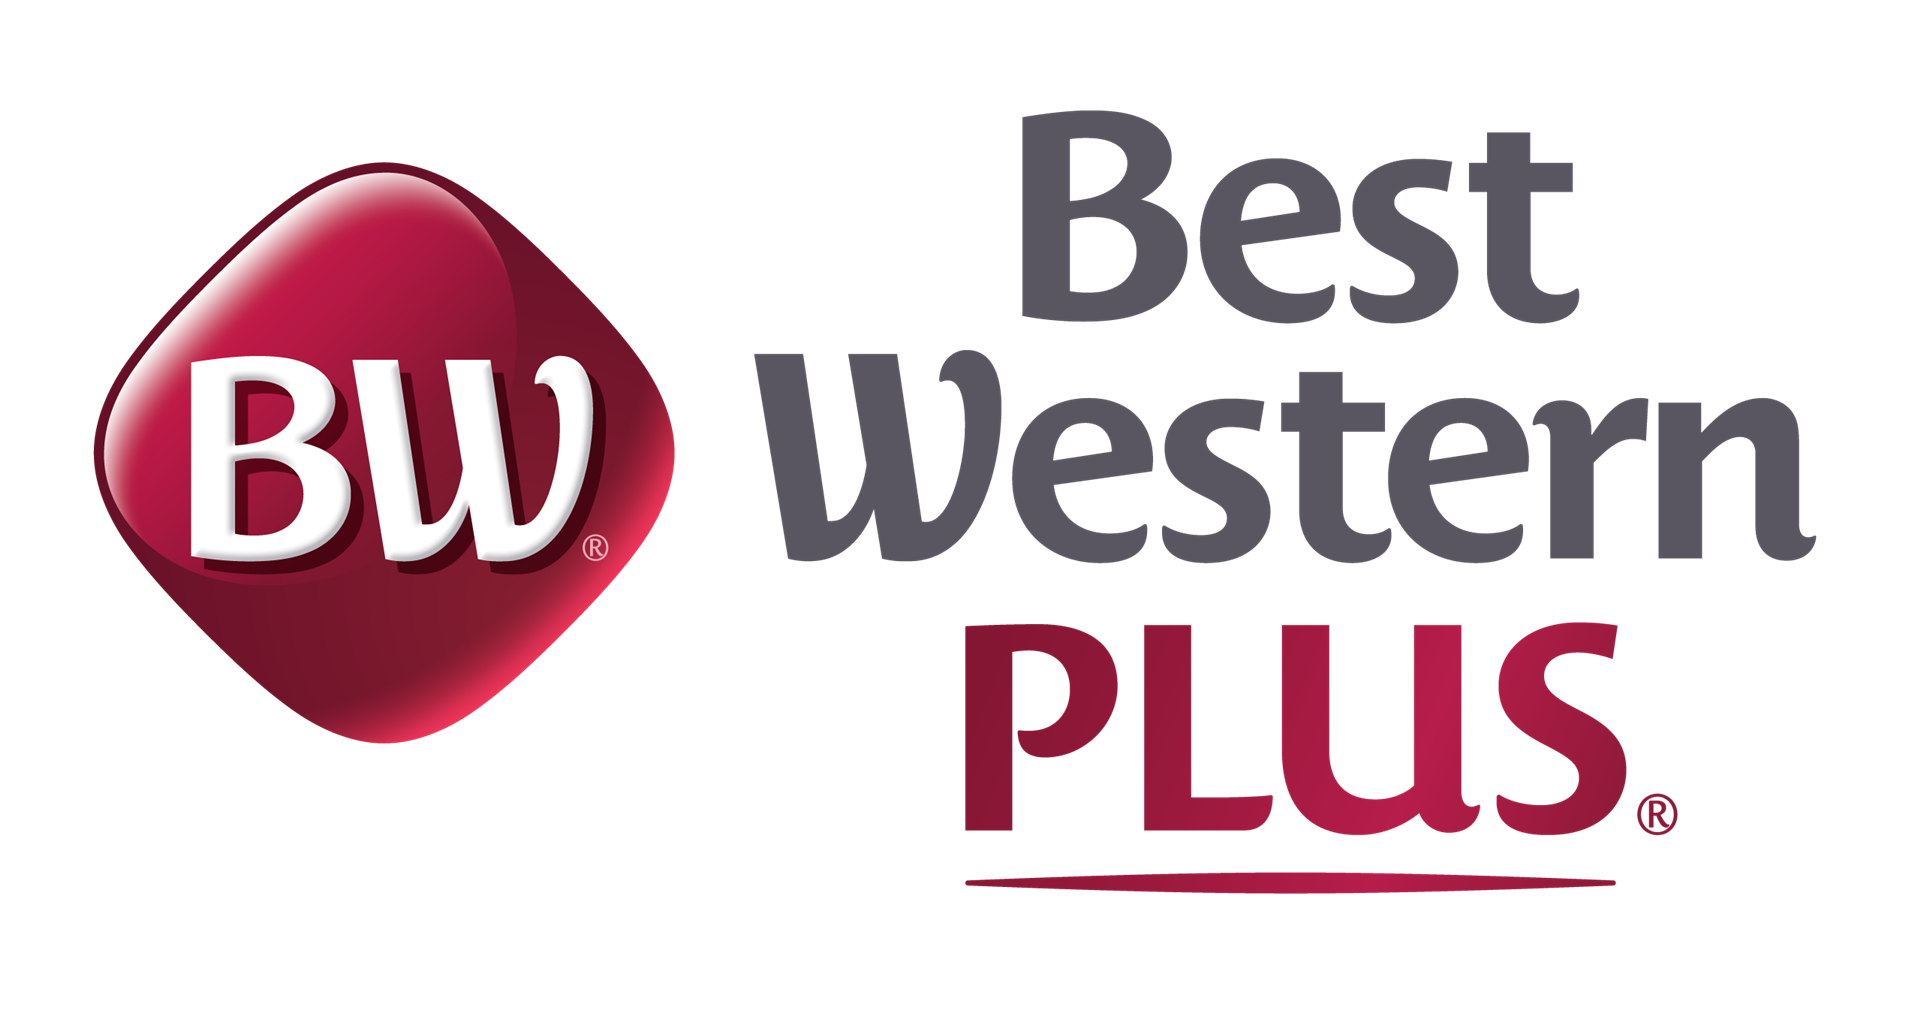 Best western plus logo png. Mariposa inn conference centre